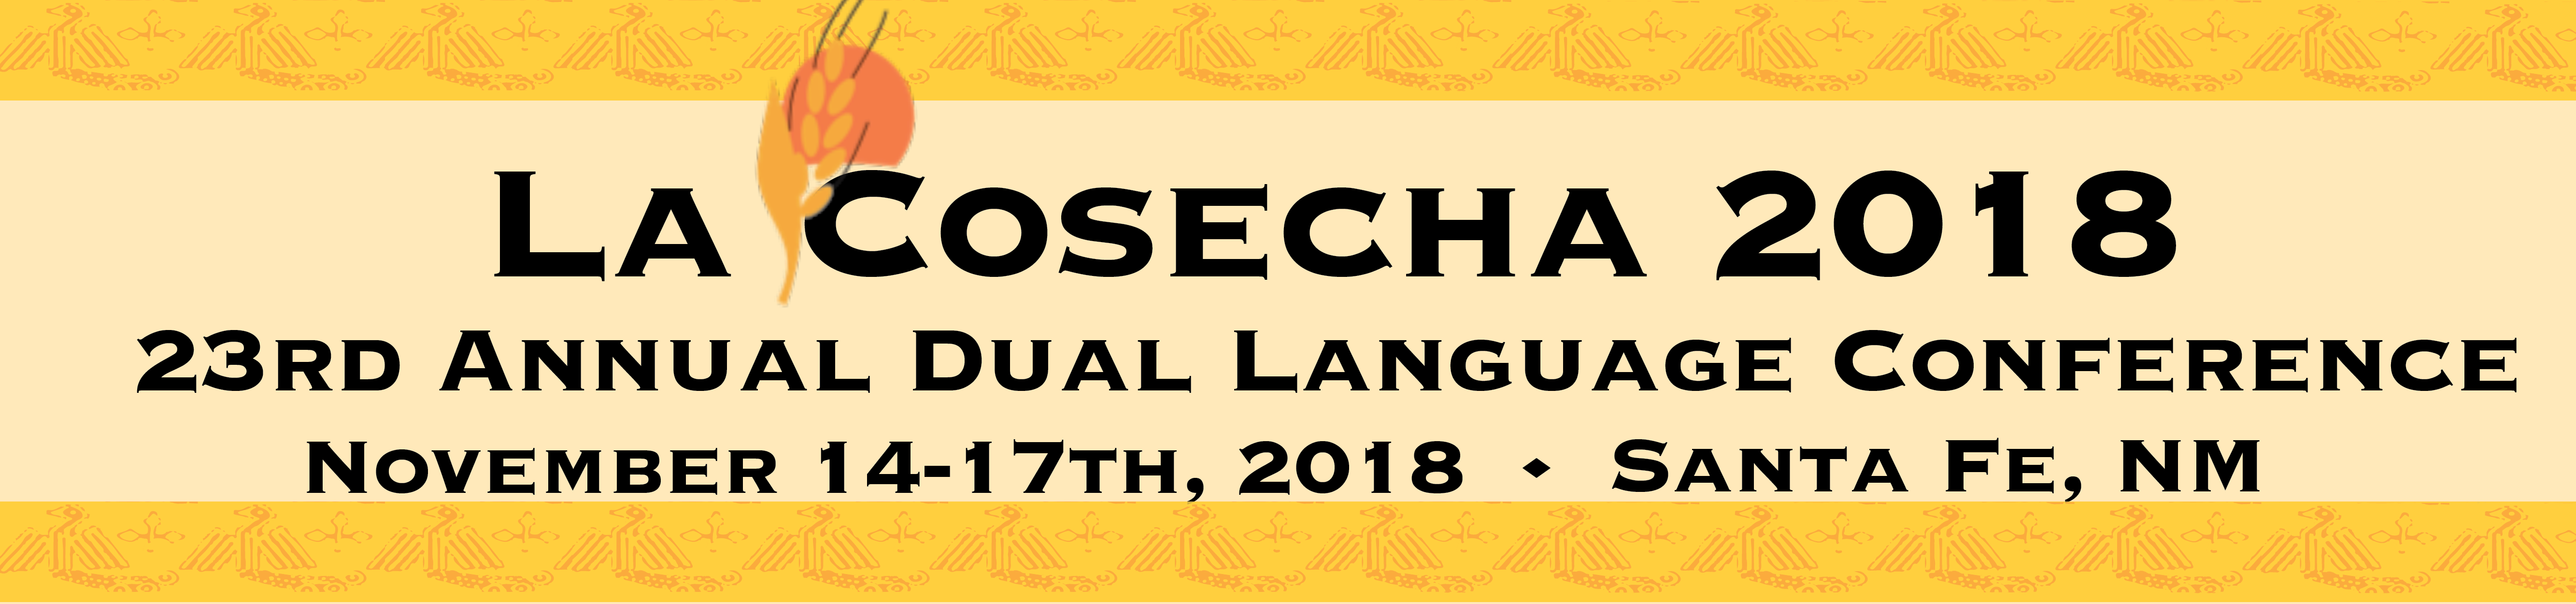 2018 La Cosecha Dual Language Conference